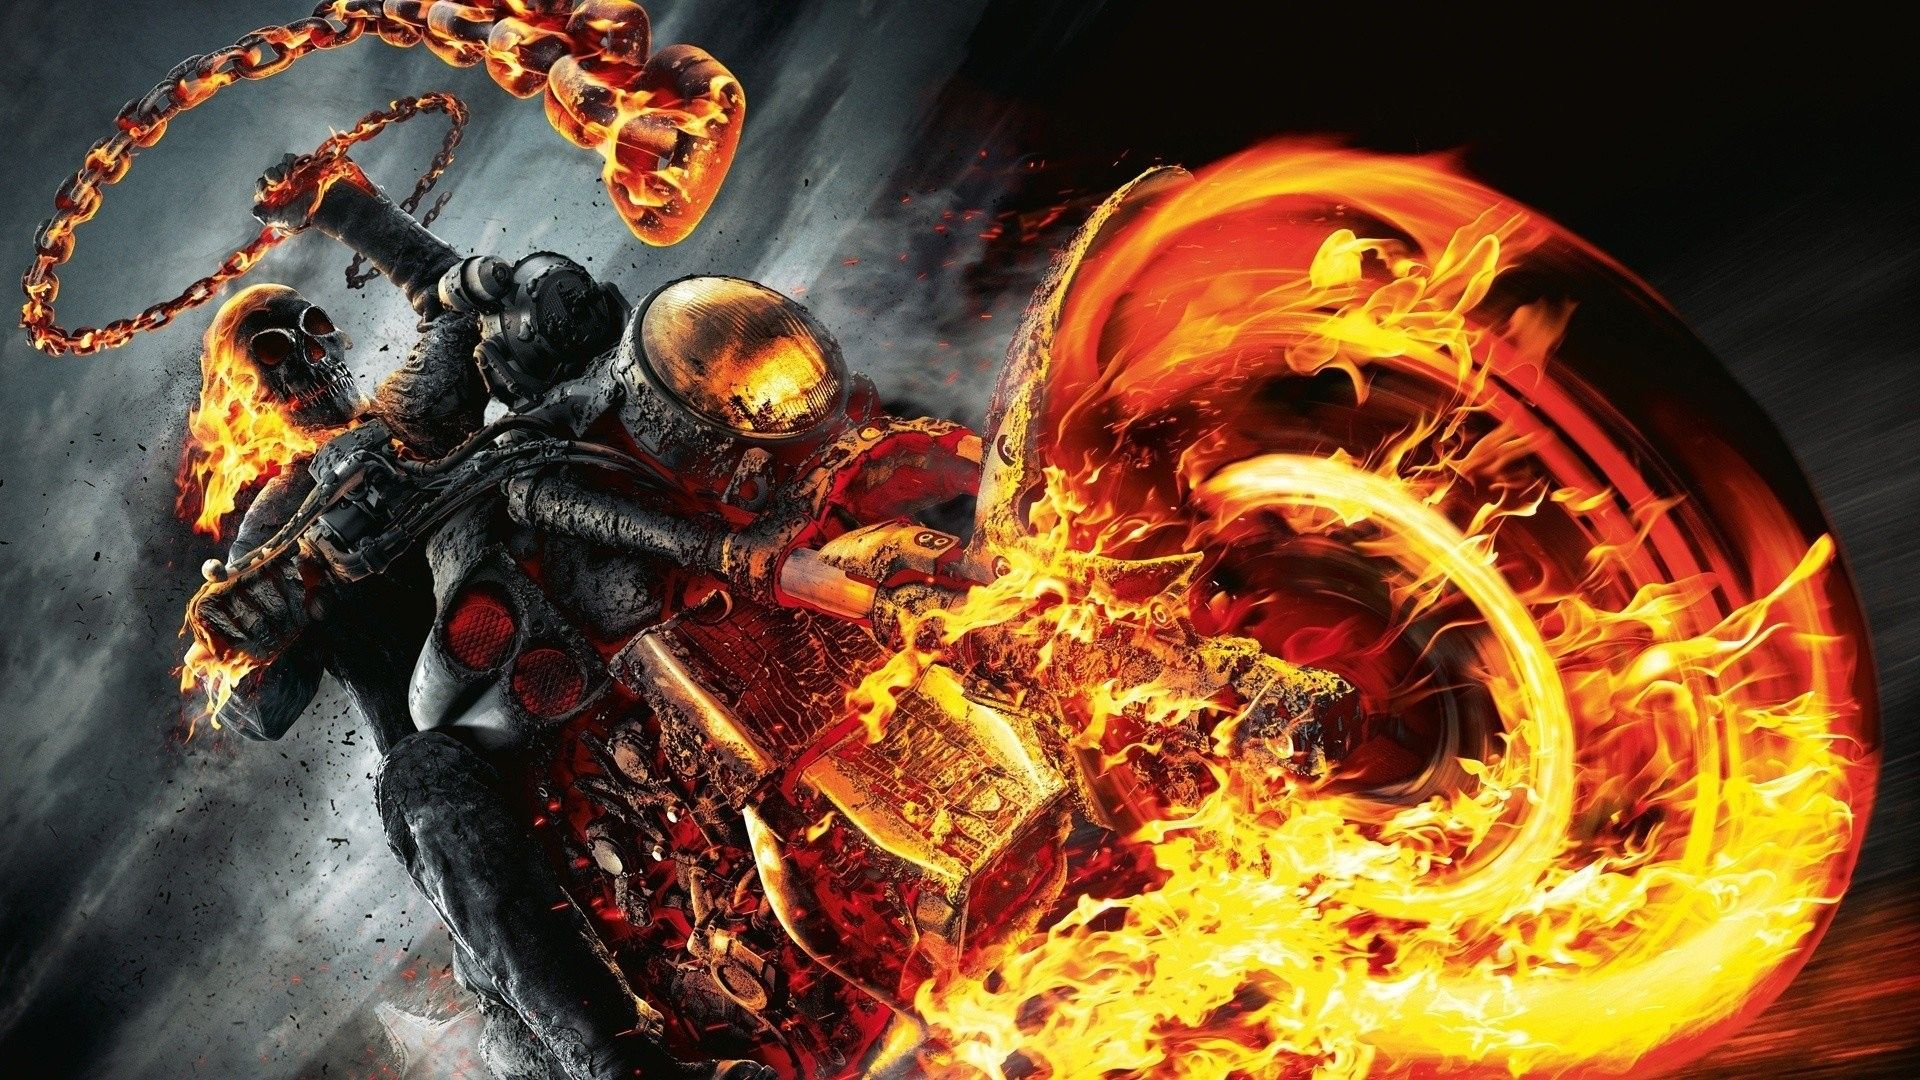 1920x1080 Ghost Rider A Hd Wallpaper Background Id 305962 Ghost Rider Wallpaper Ghost Rider Bike Ghost Rider 2